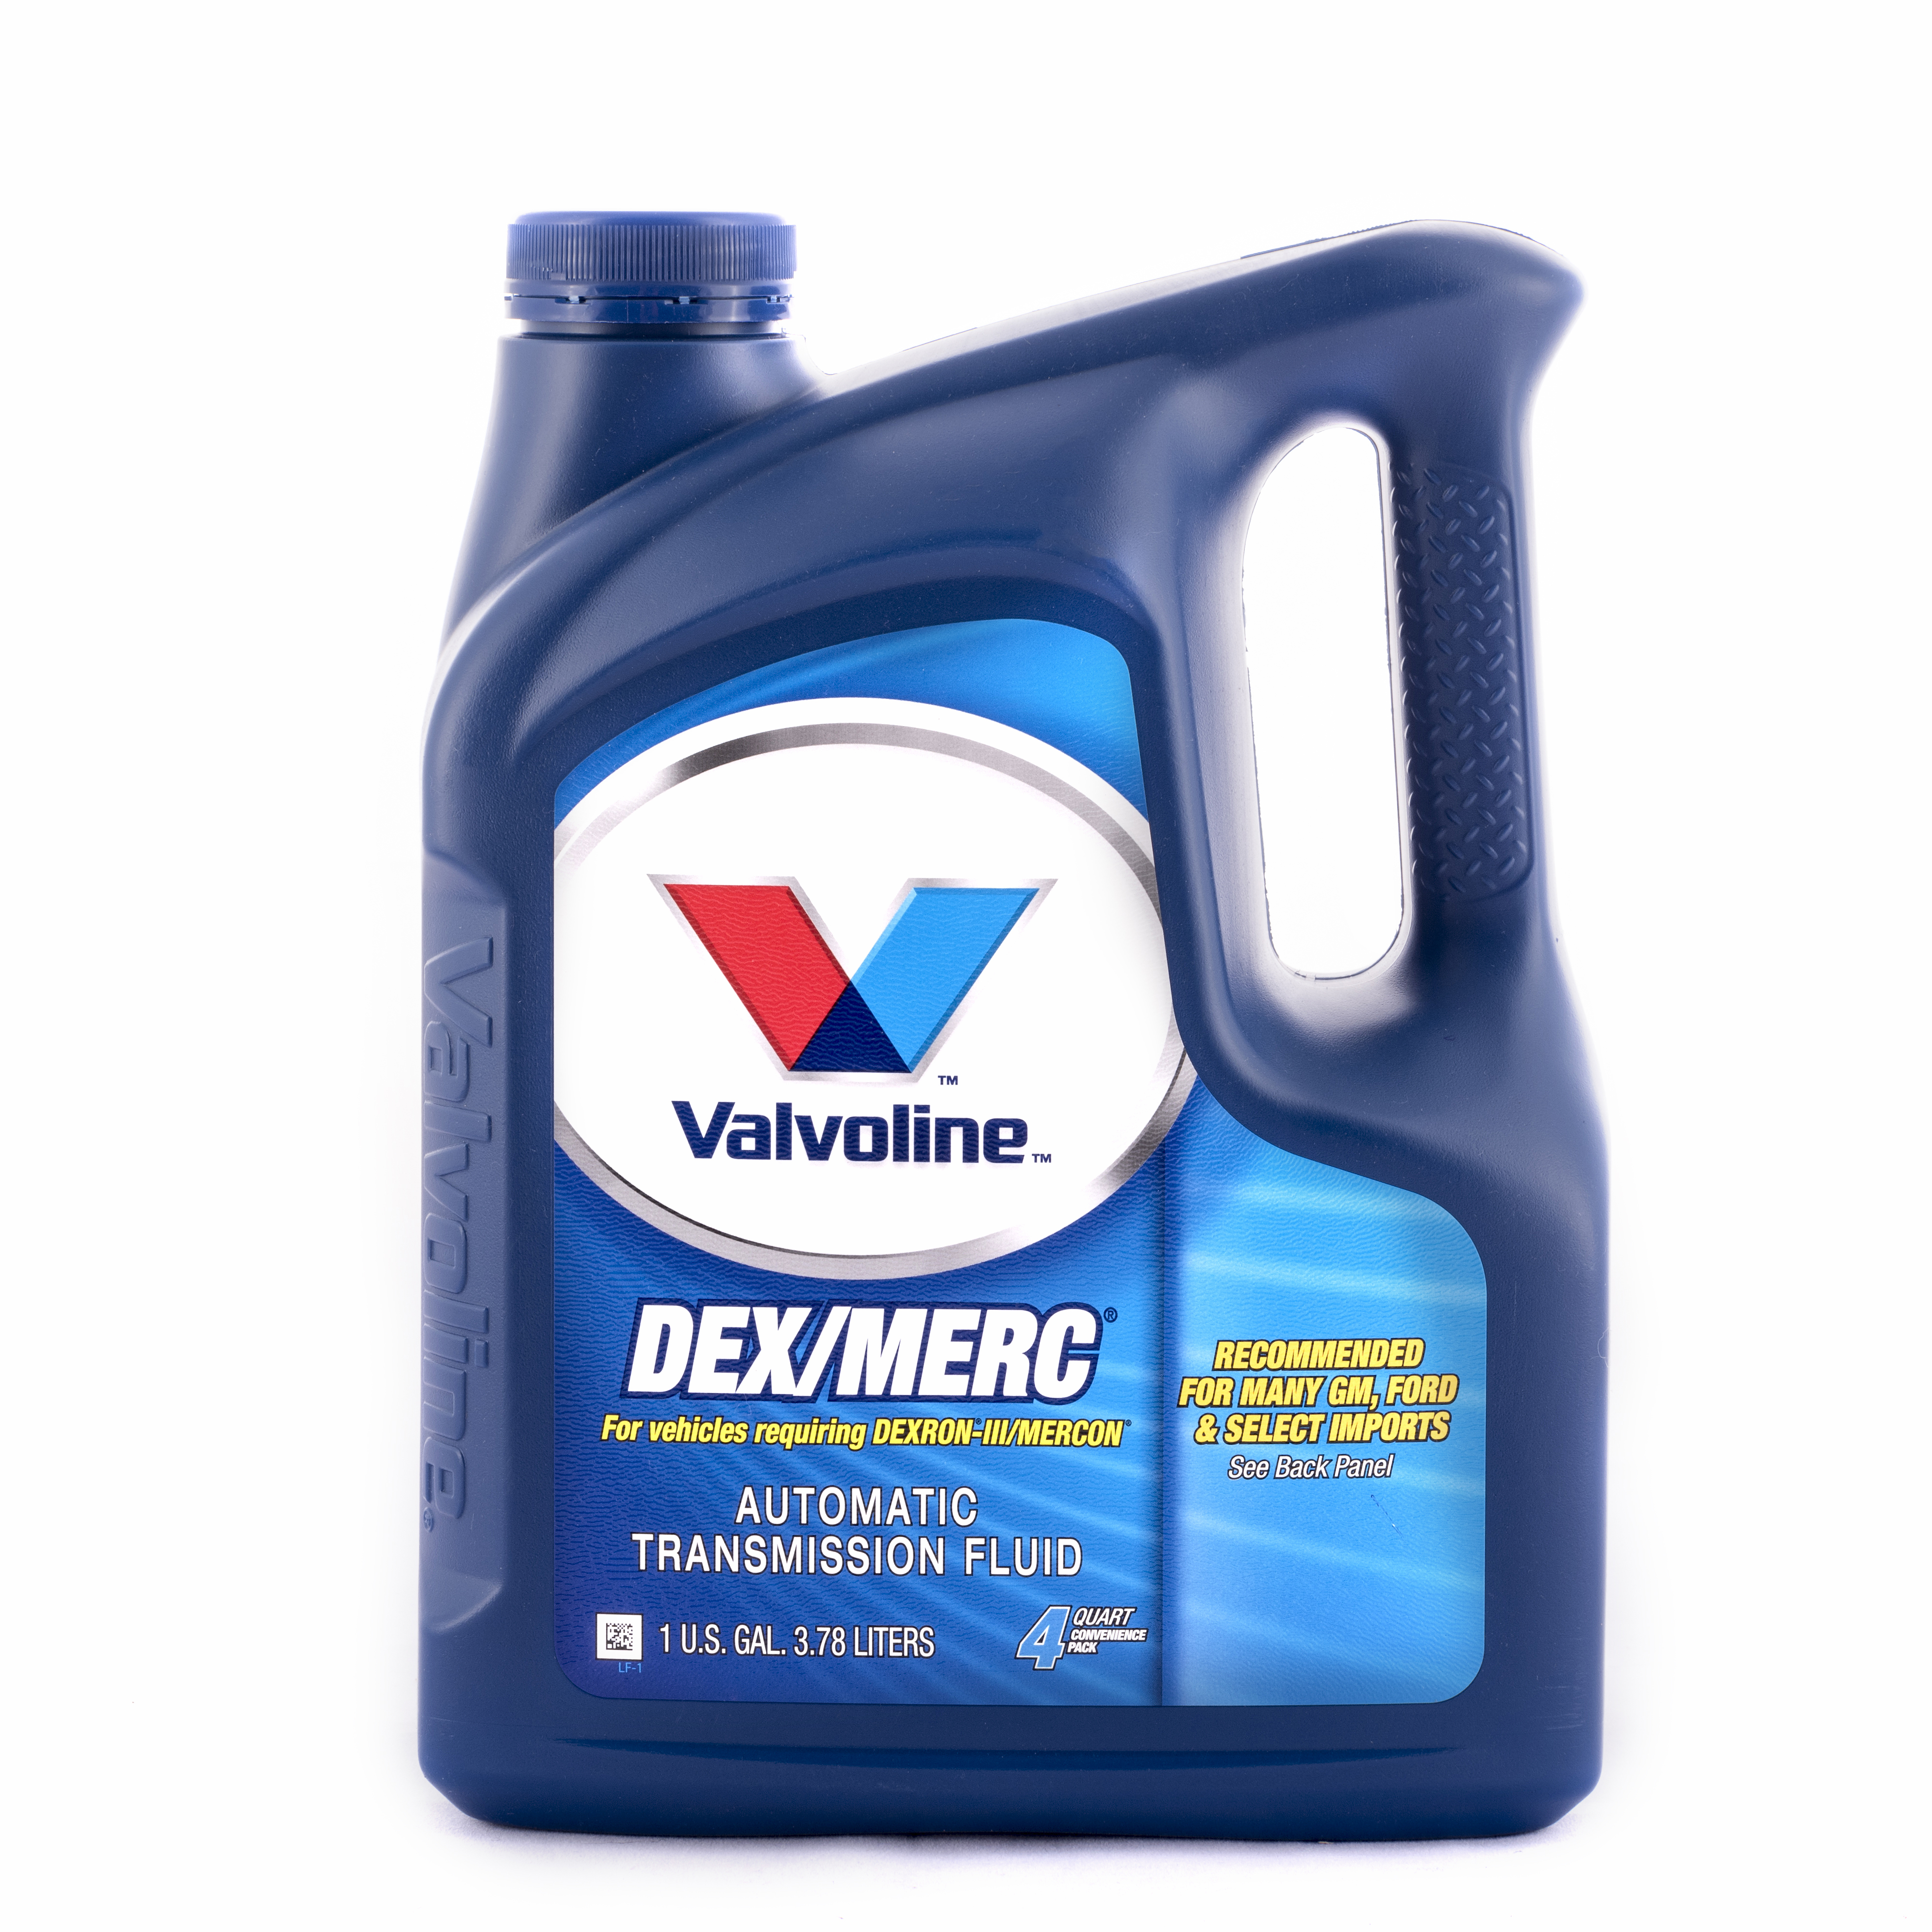 Valvoline DEX/MERC Automatic Transmission Fluid, 1 Gallon